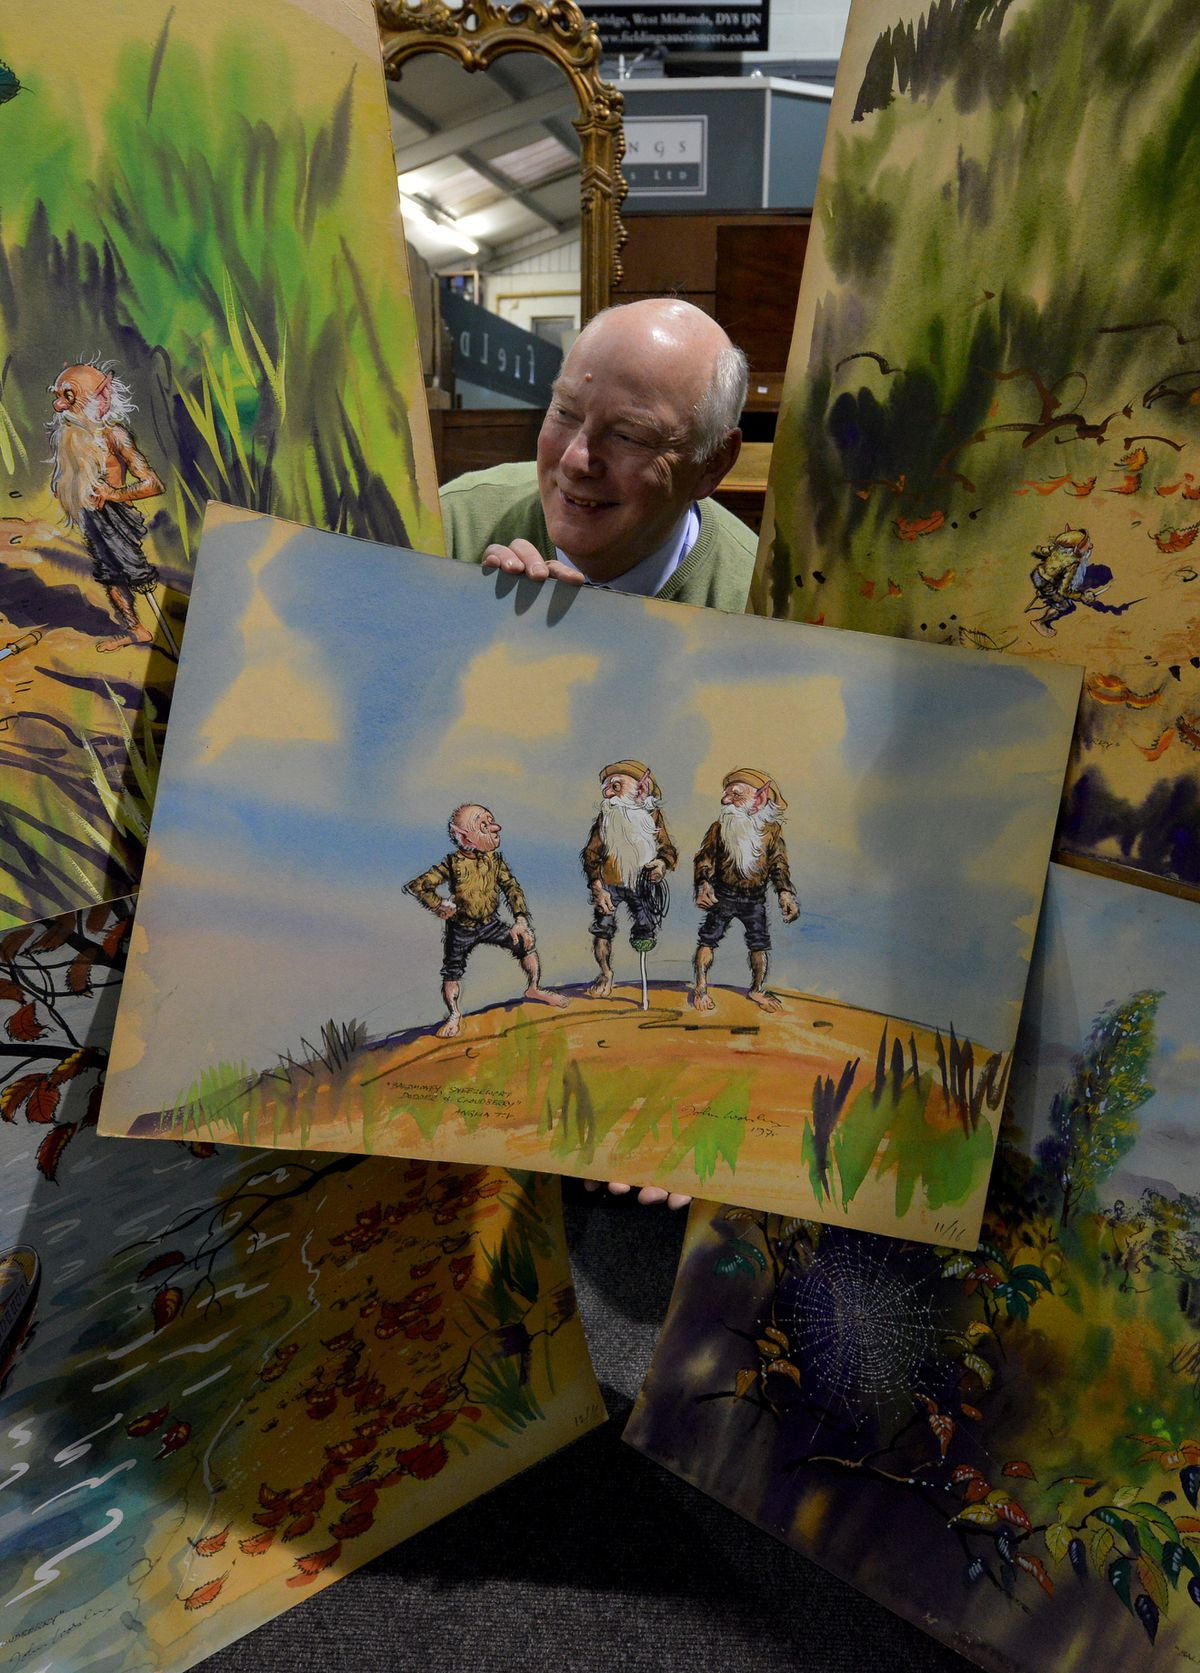 Illustrations by artist John Worsley from the 1970's TV series 'The Little Grey Men' will be going under the hammer at Fieldings in Stourbridge and are expected to fetch between £50- £100 each. Pictured is picture consultant Bill Lacey.